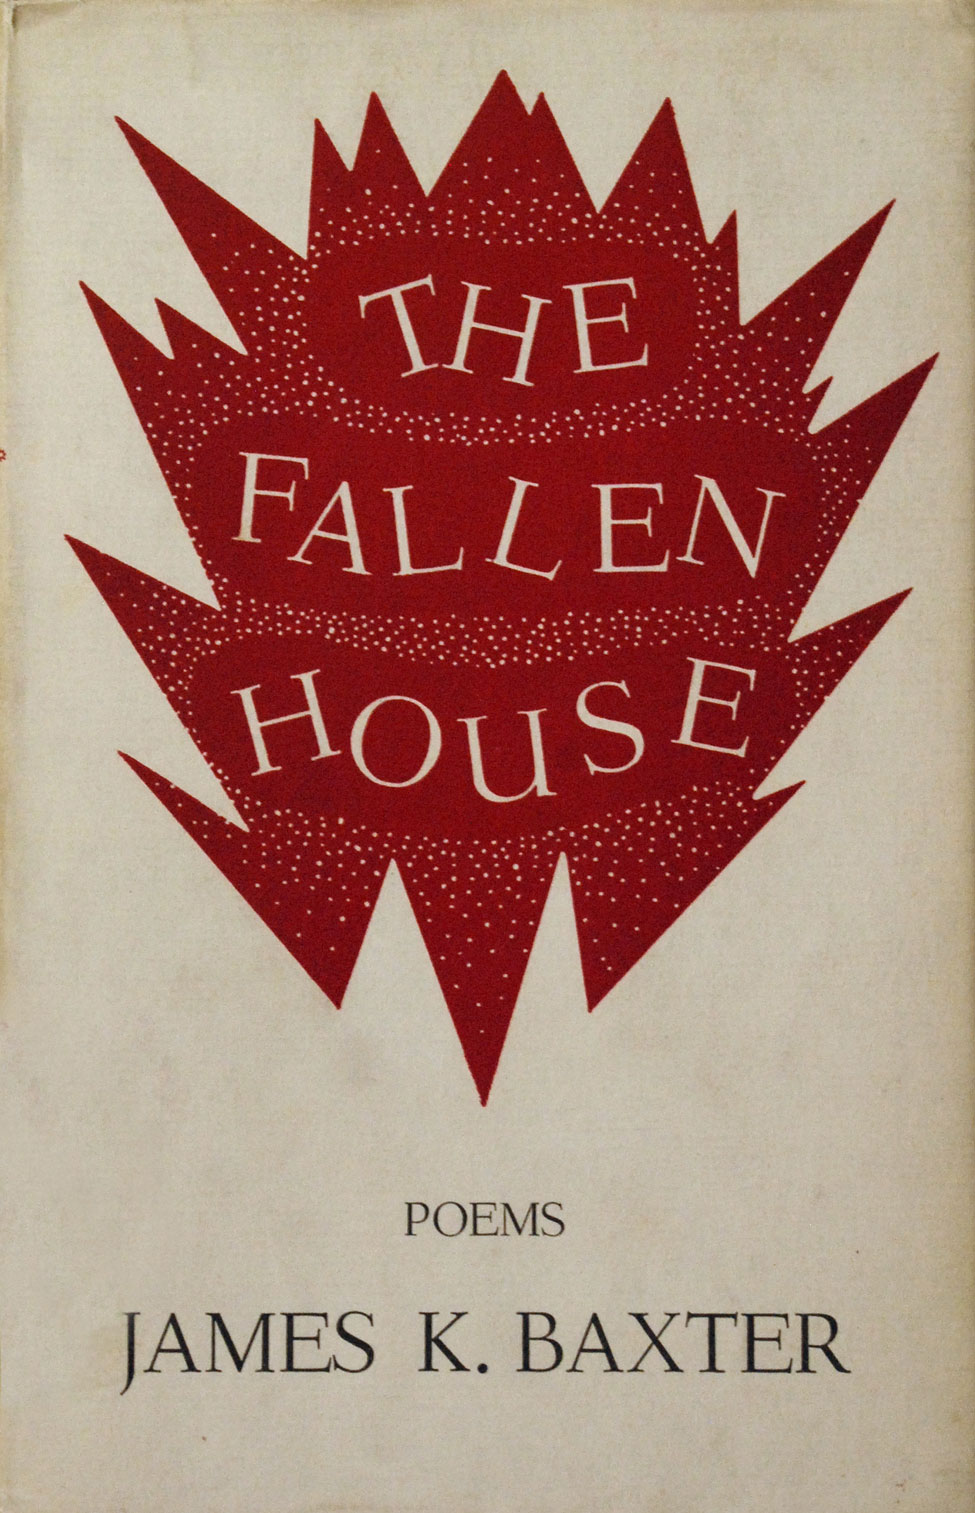 James K. Baxter. The Fallen House. <i>Christchurch: The Caxton Press, 1953.</i>